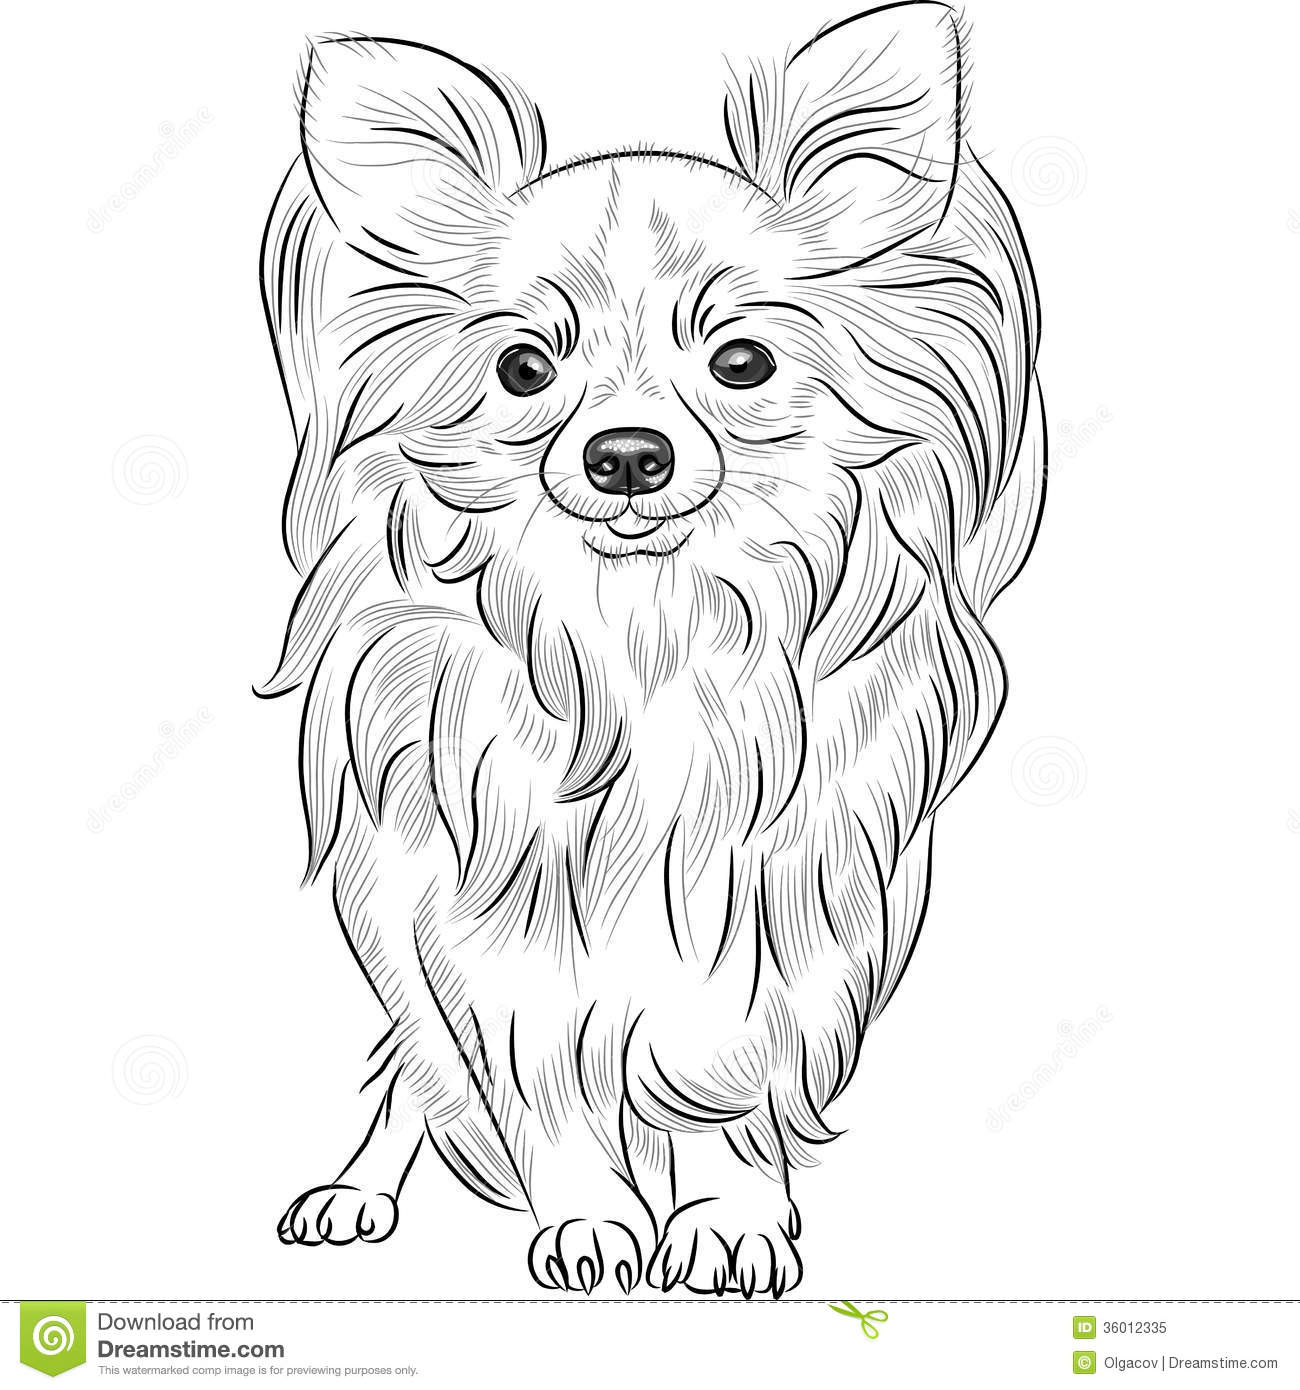 A Drawing Of A Hurt Dog For Kids